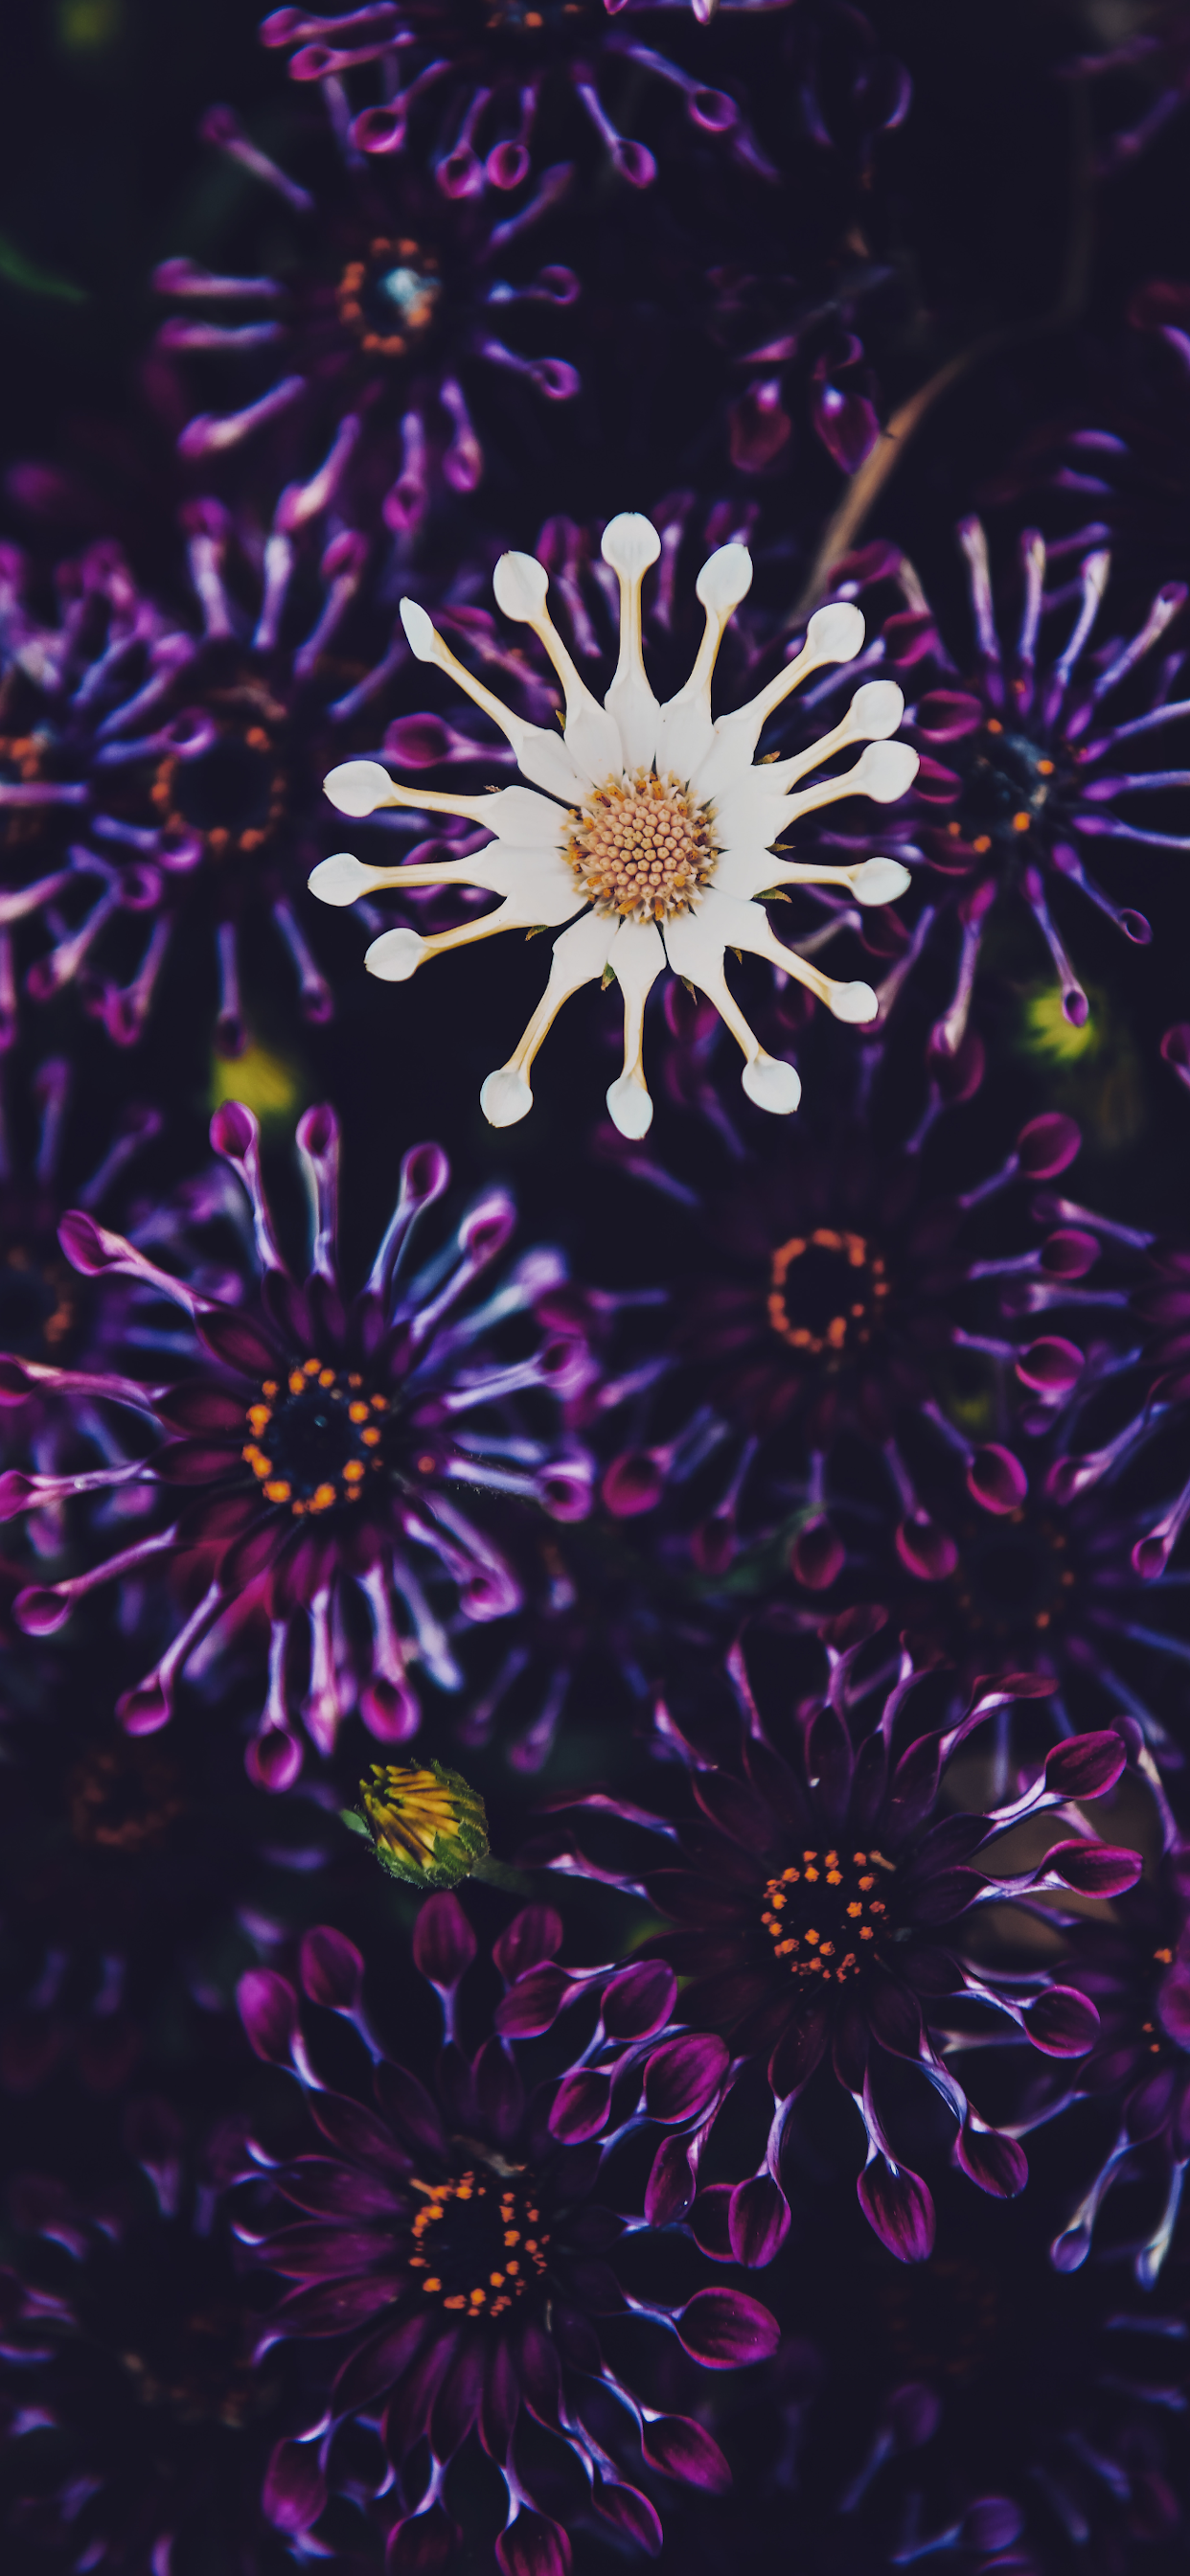 iPhone wallpapers flowers whirligig osteospermum Fonds d'écran iPhone du 09/01/2020